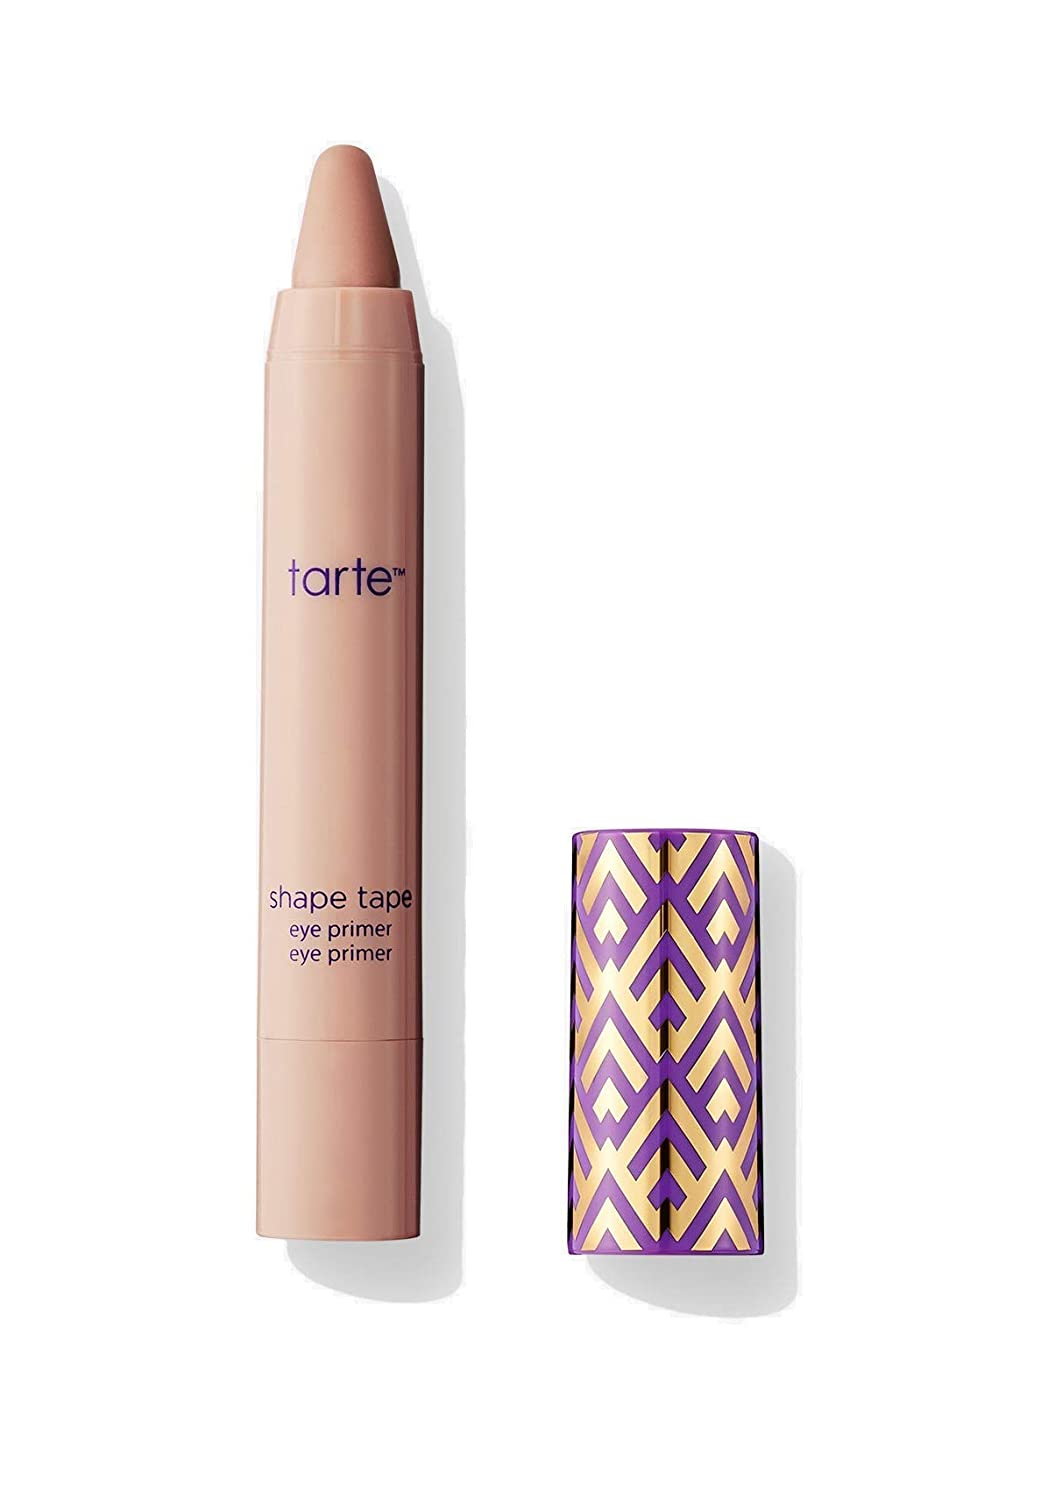 Shape Tape 12 Hour Eye Primer Stick by Tarte